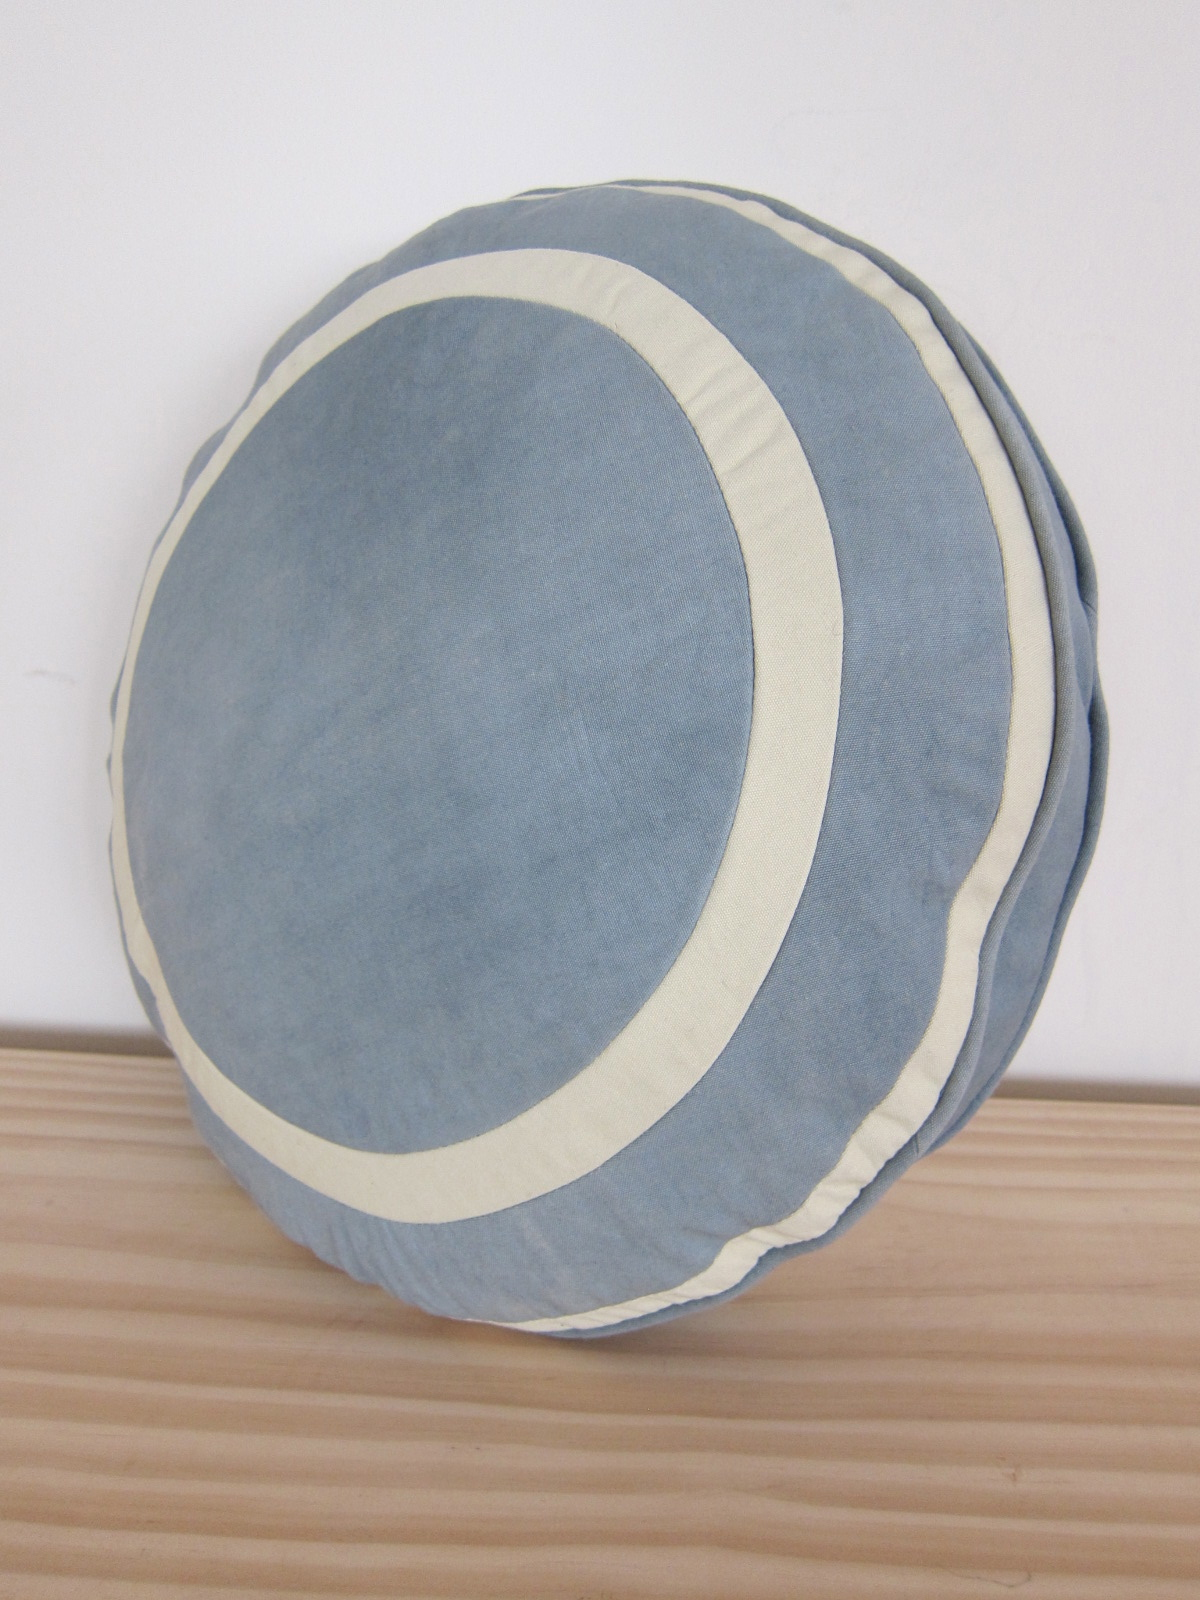 Wedgewood circular pillow felt Wedgewood designs